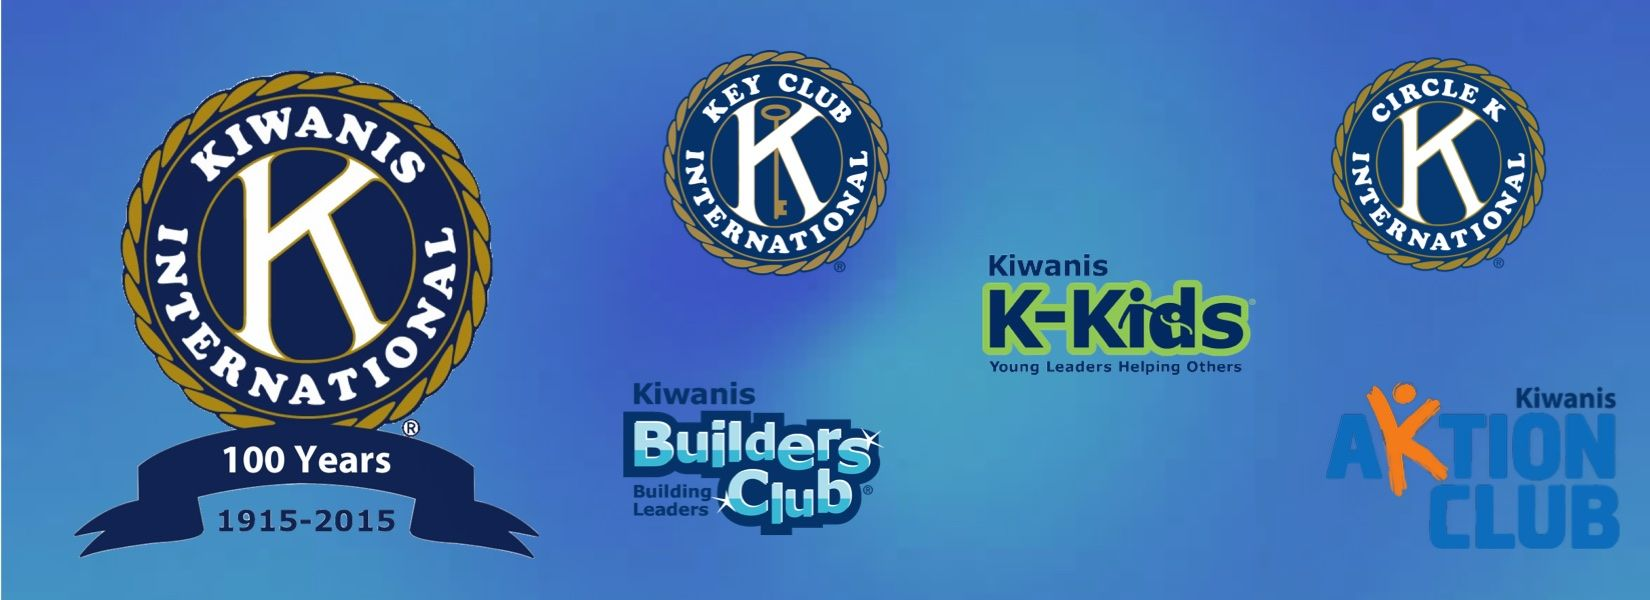 A family of servant leaders: Kiwanis clubs focus on.